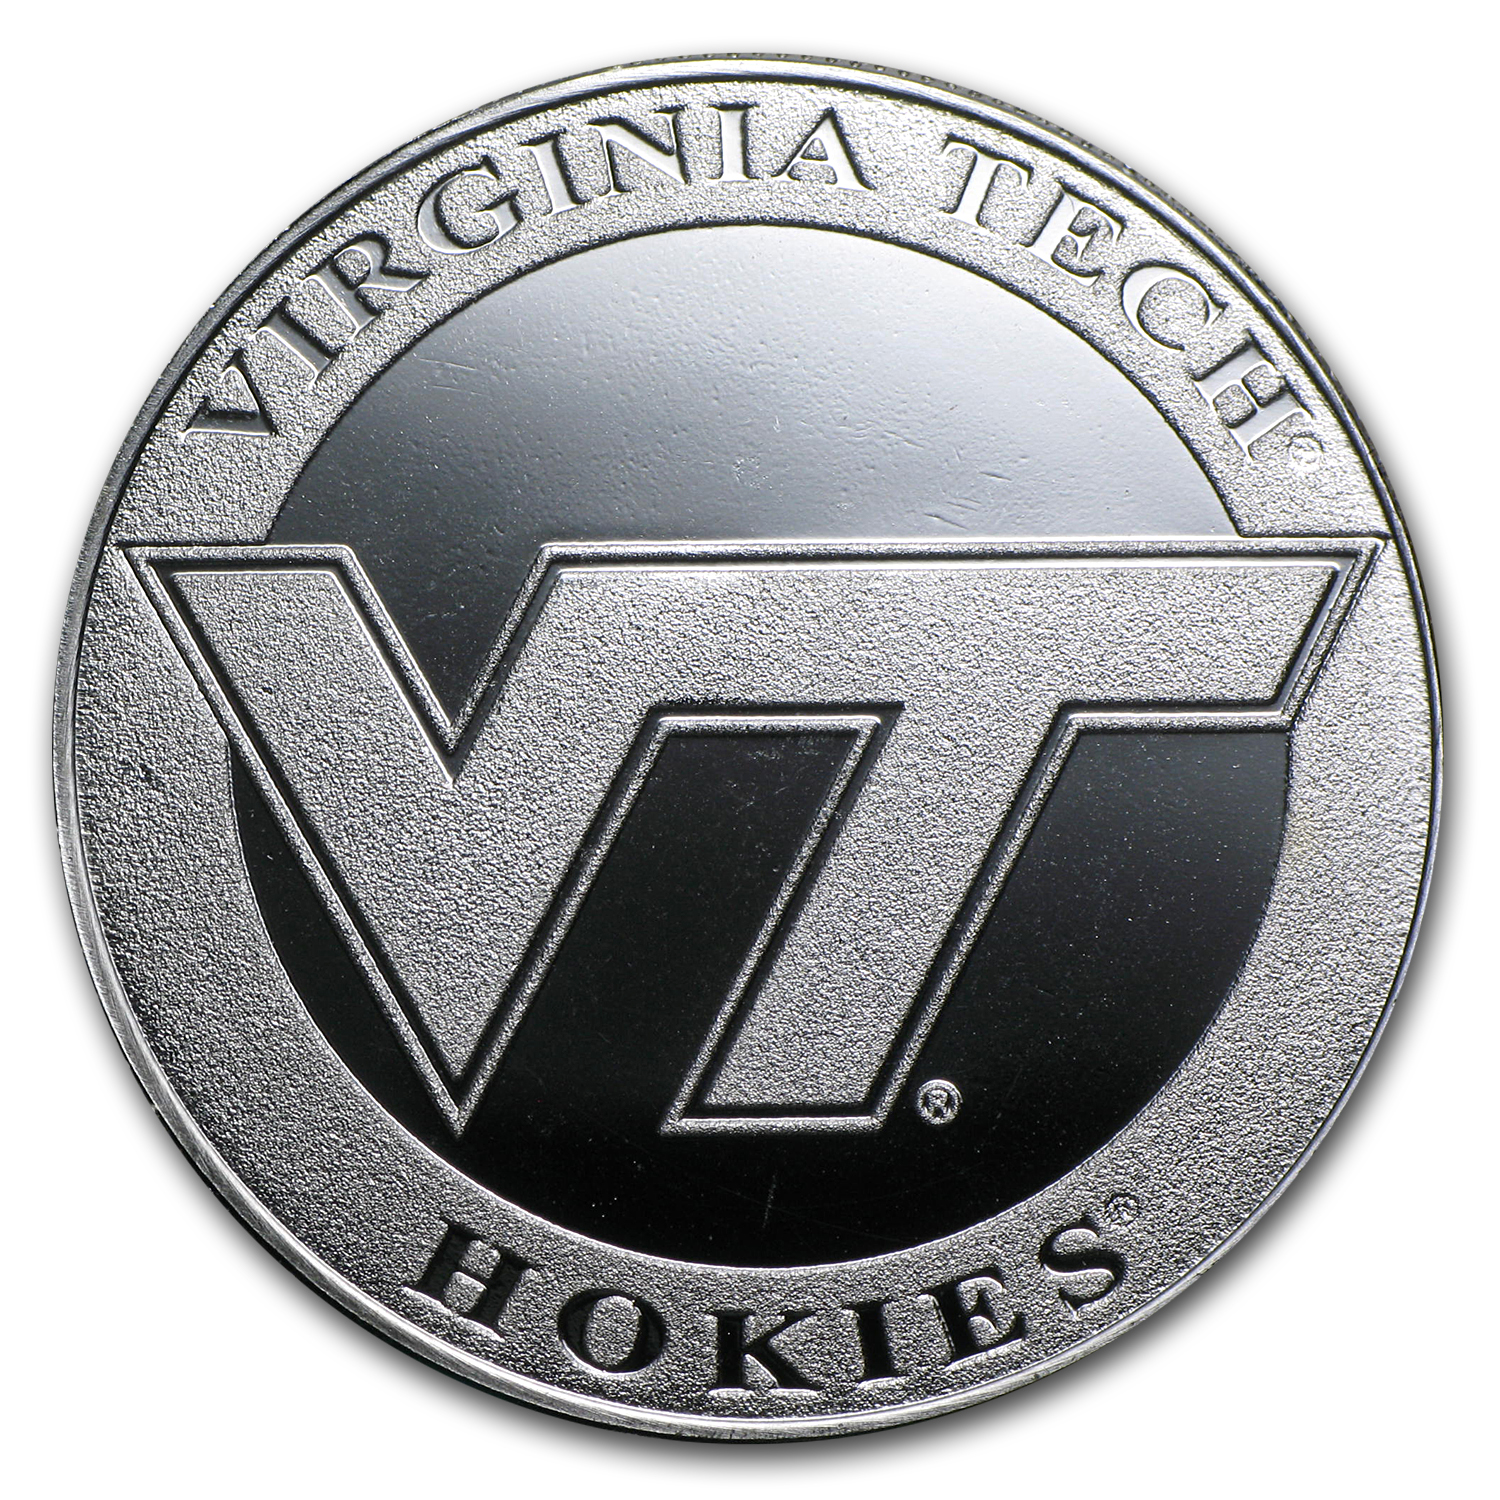 1 oz Silver Round - Virginia Tech